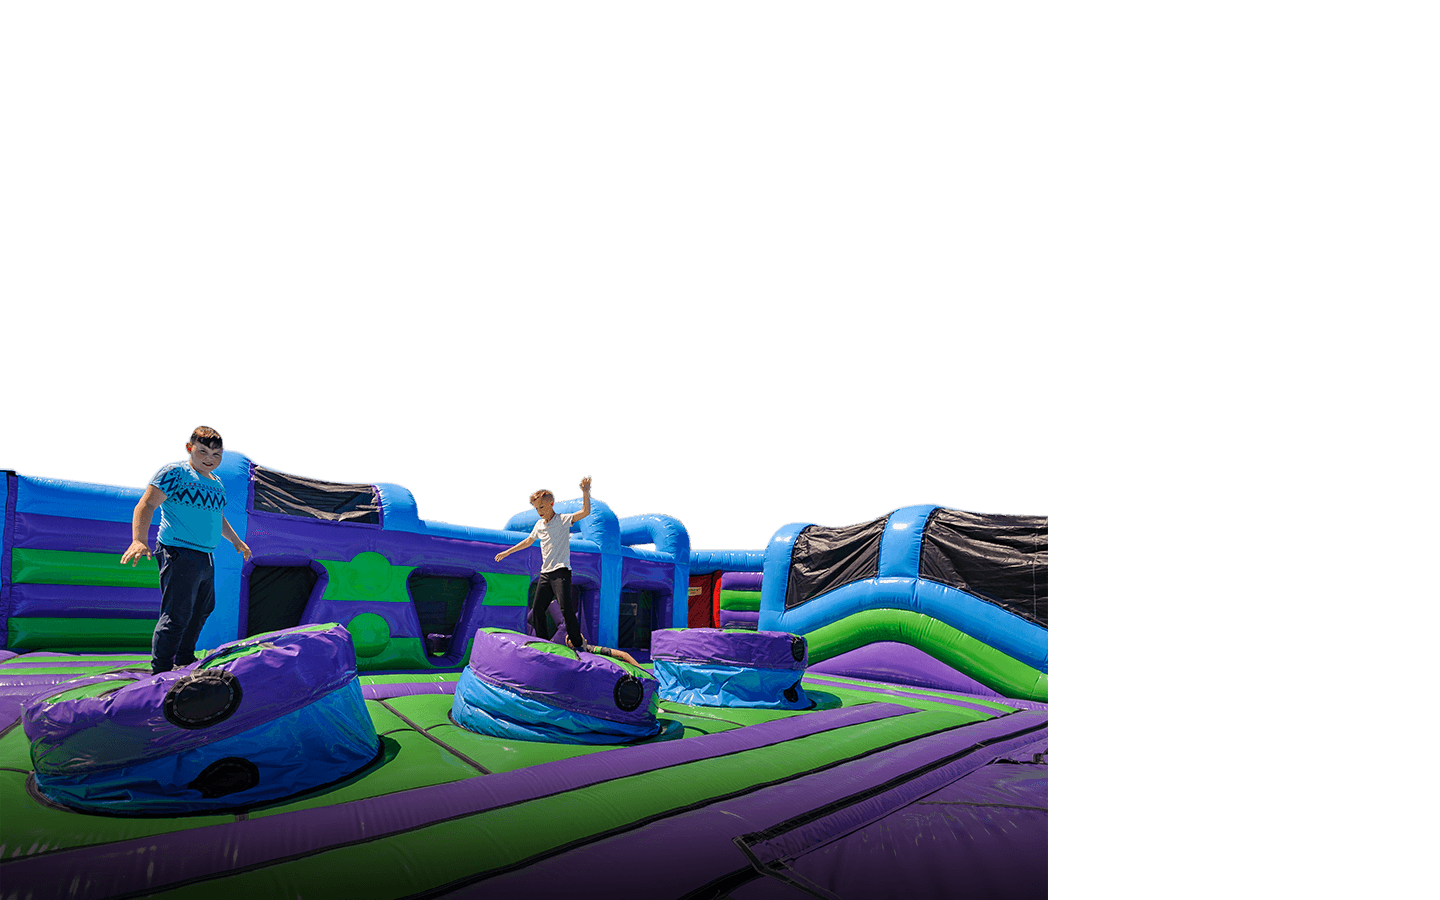 Inflatable Theme Park with Climbing wall